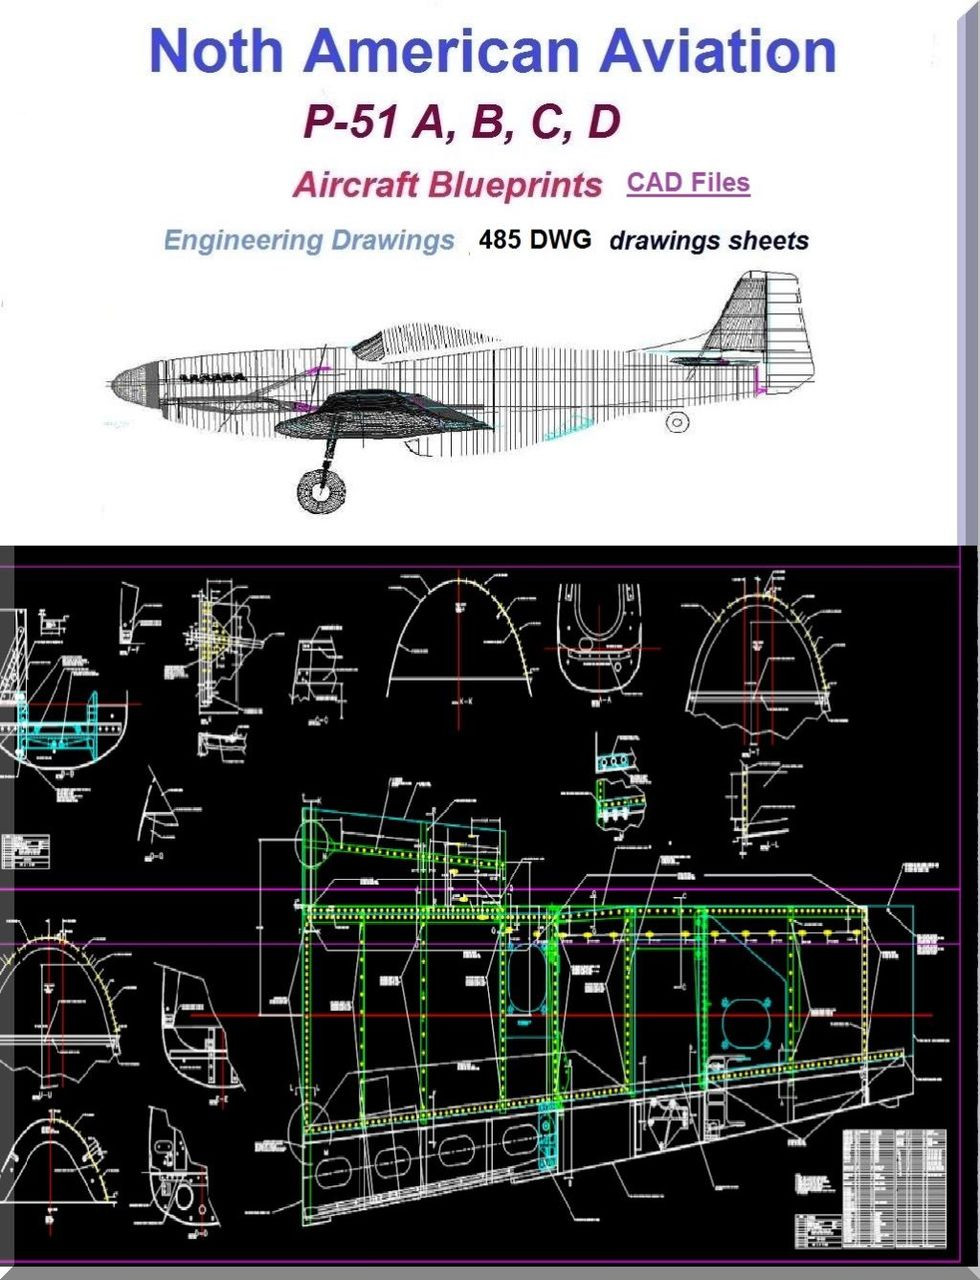 North American Aviation P-51 Aircraft Blueprints Engineering Drawings CAD  Files - Download